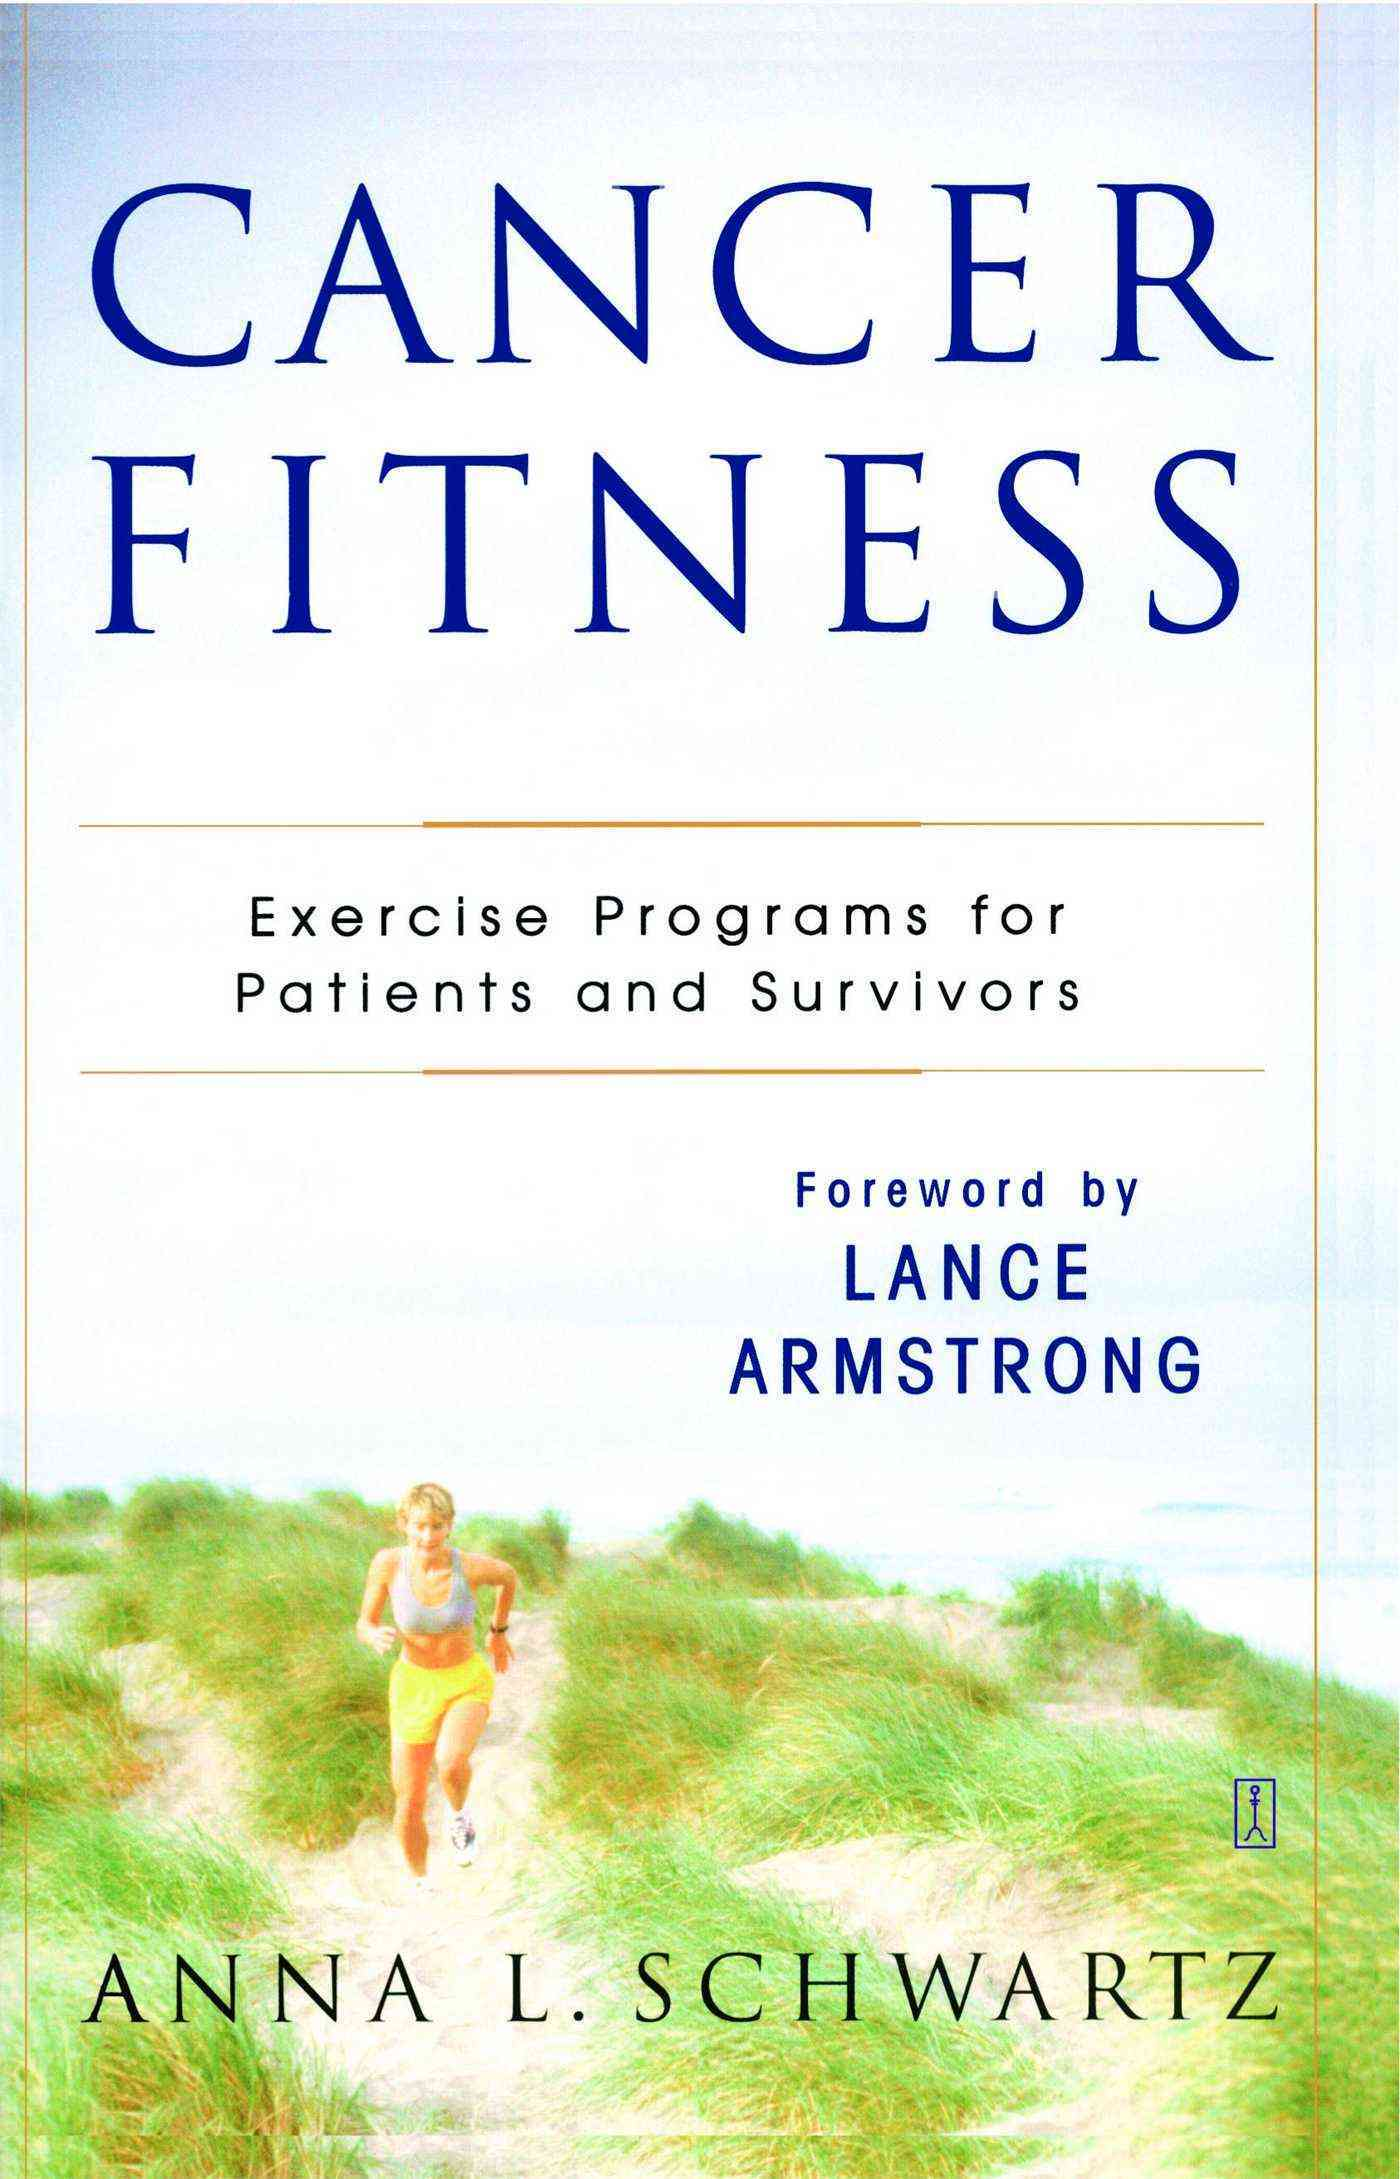 Cancer Fitness: Exercise Programs for Cancer Patients and Survivors (Paperback)